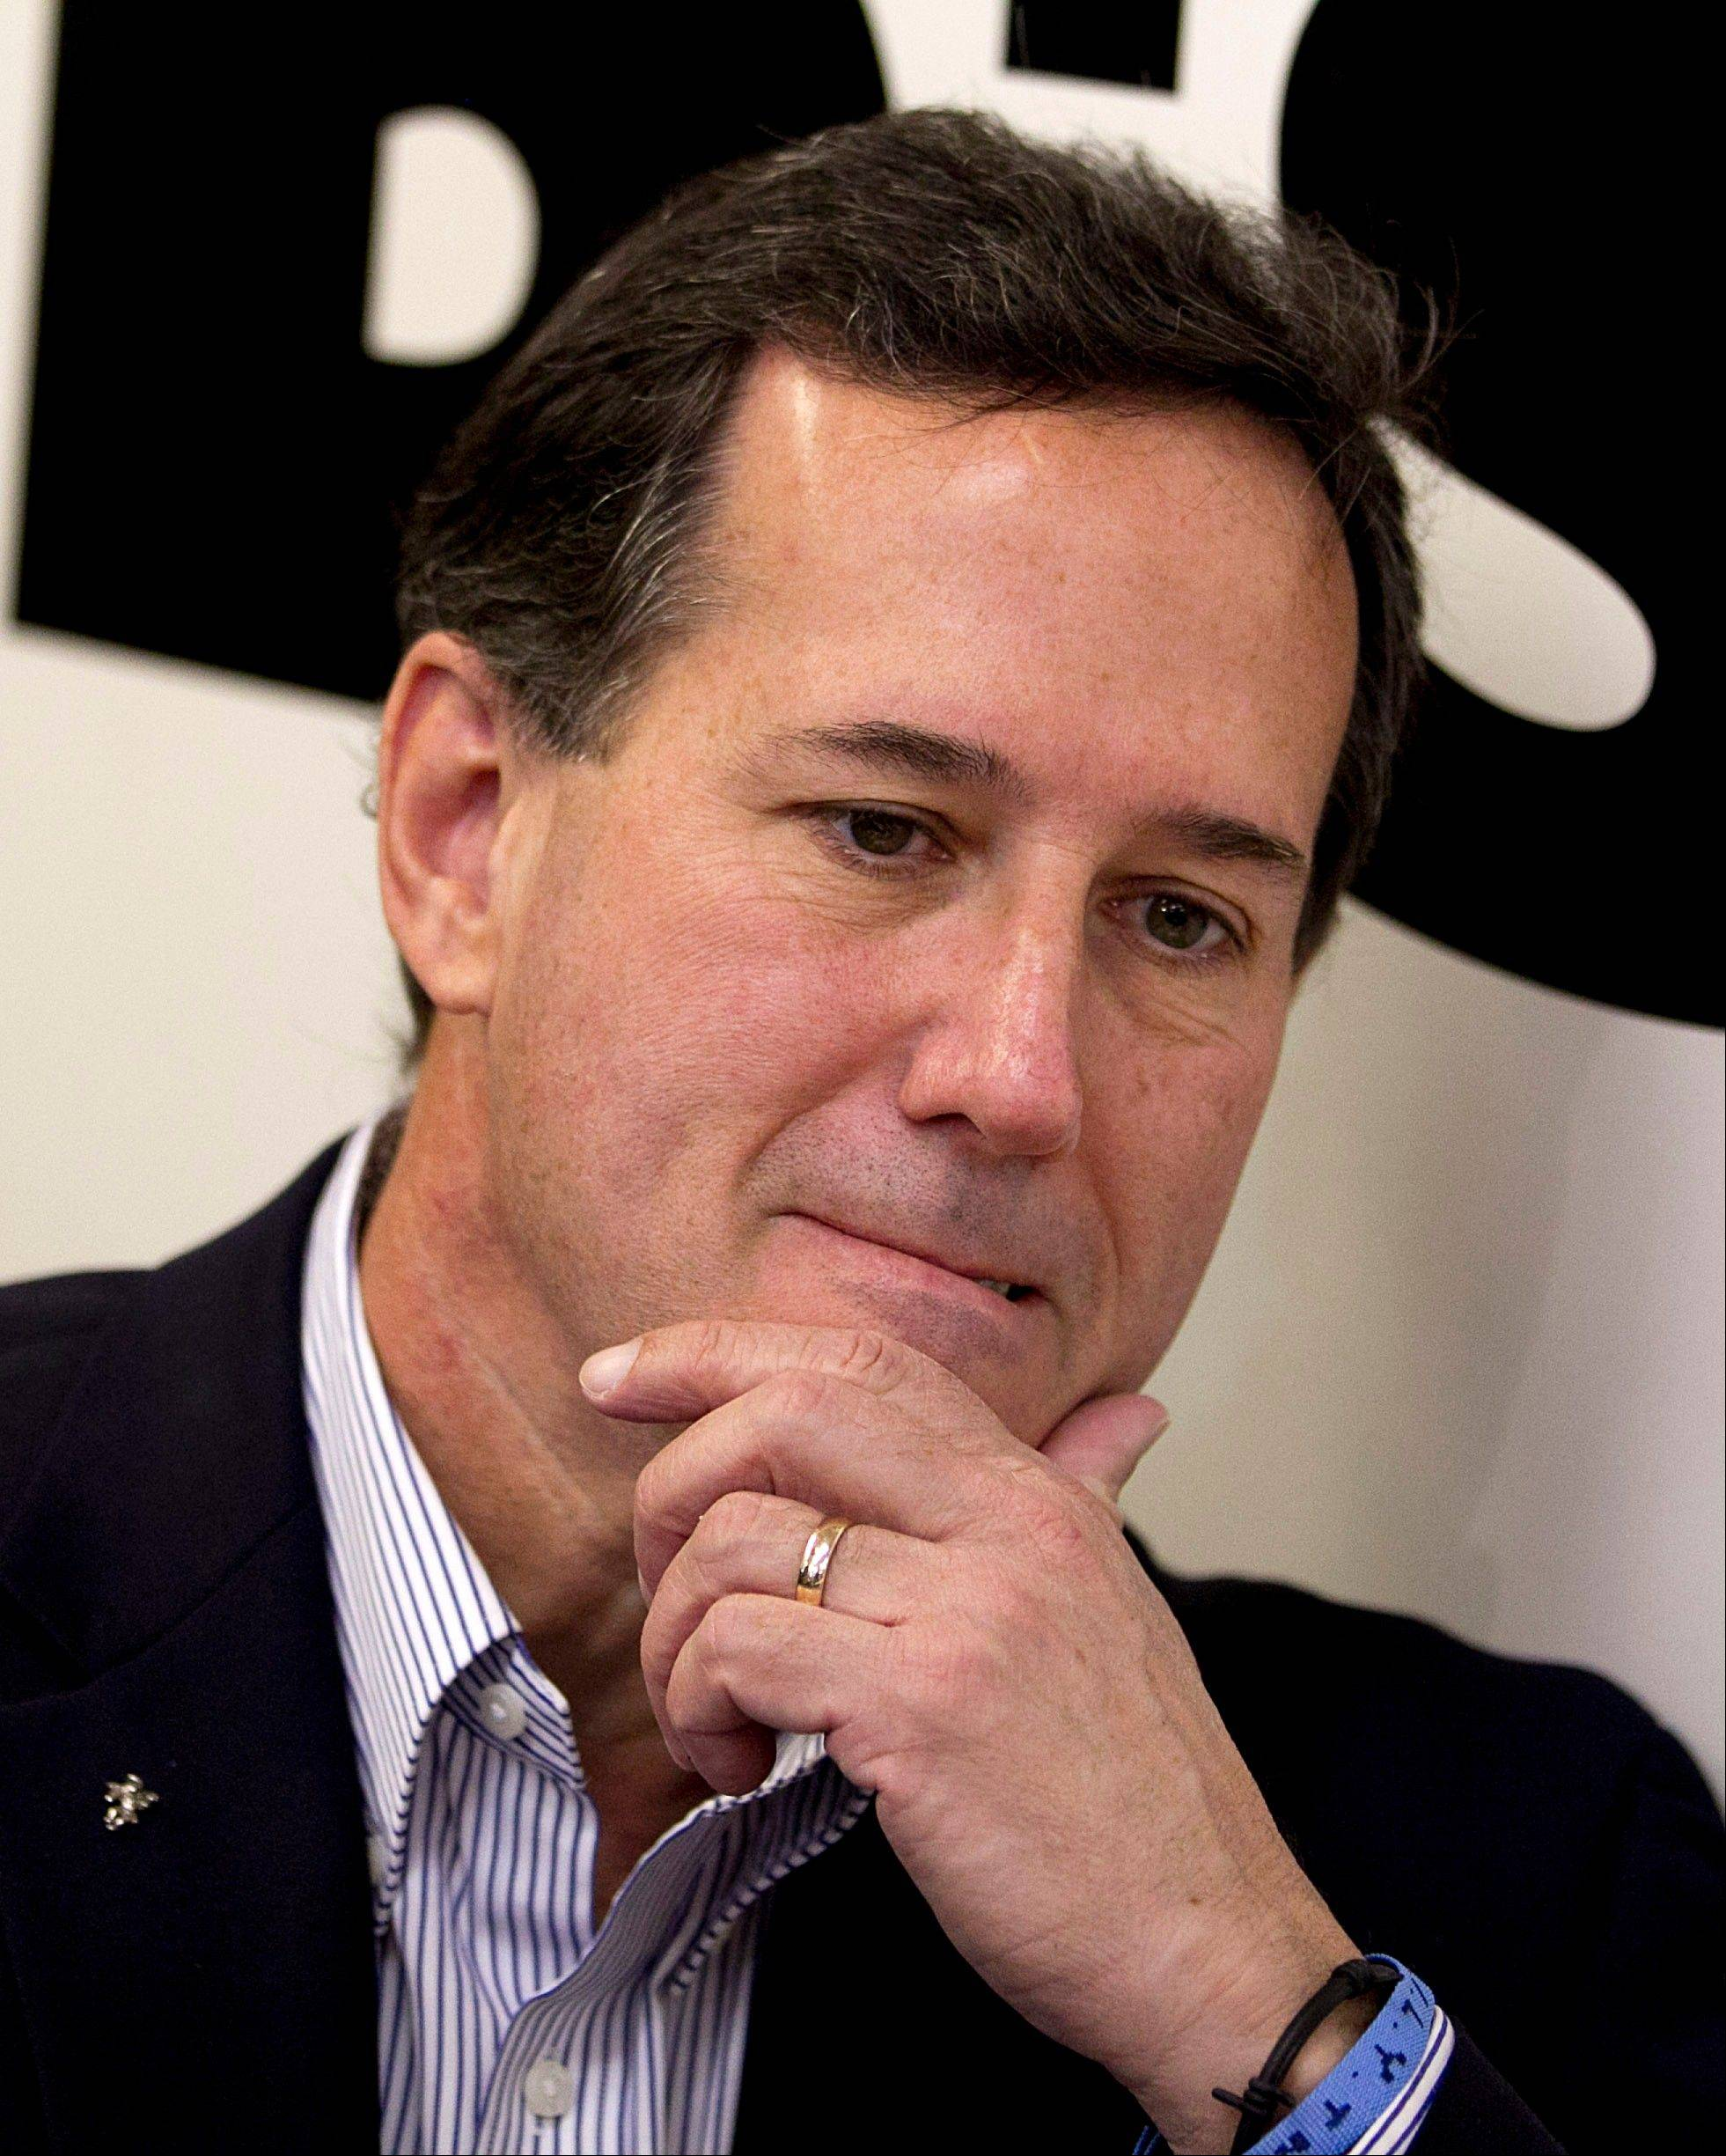 Santorum Illinois leaders: 'We earned the silver medal'